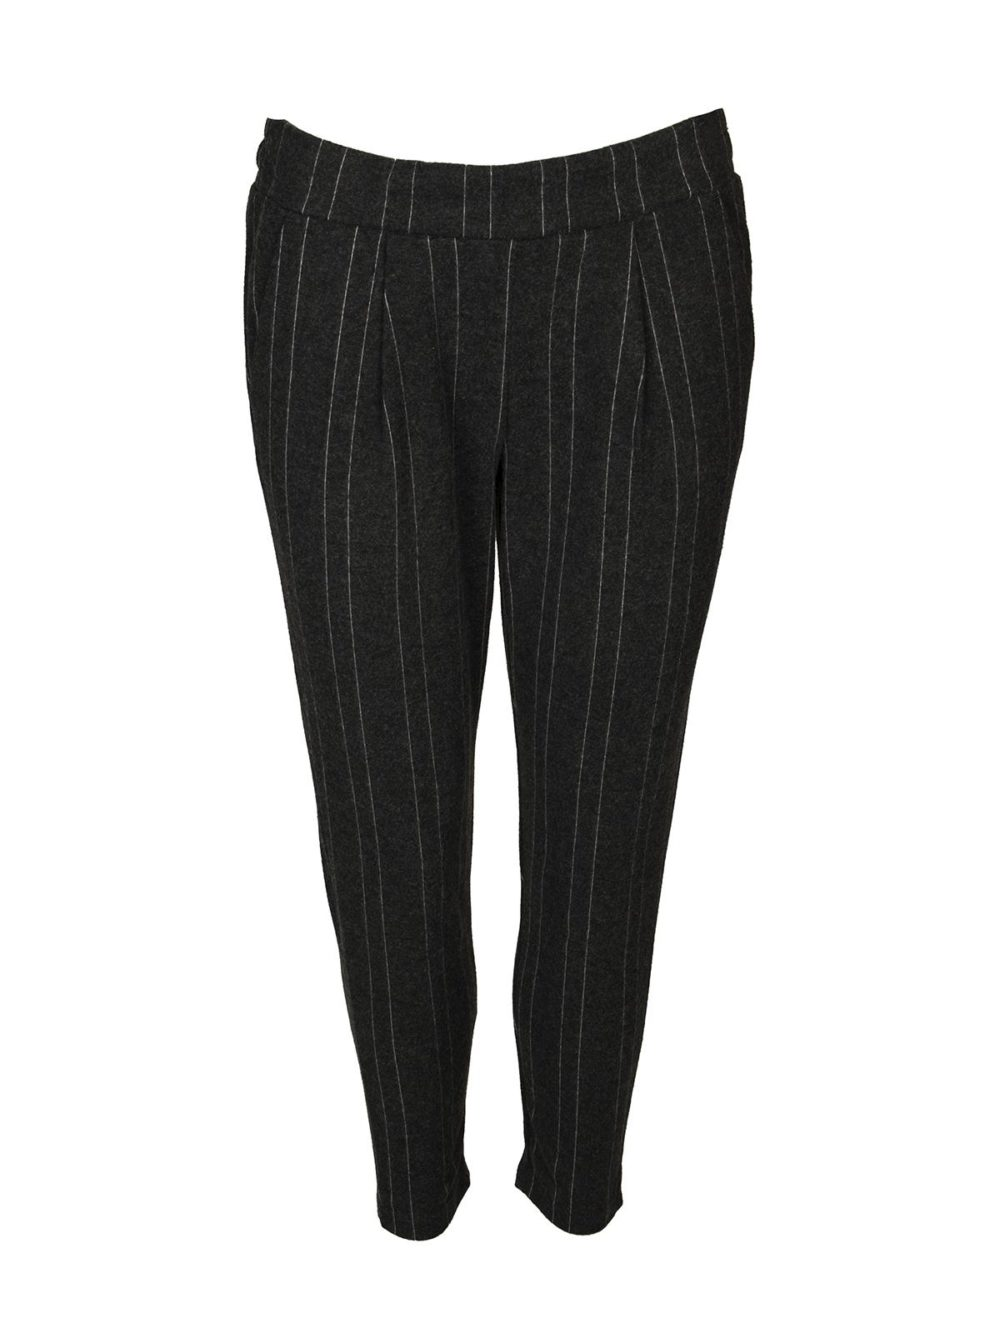 Kate Brushed Trousers ICHI Katie Kerr Women's clothing